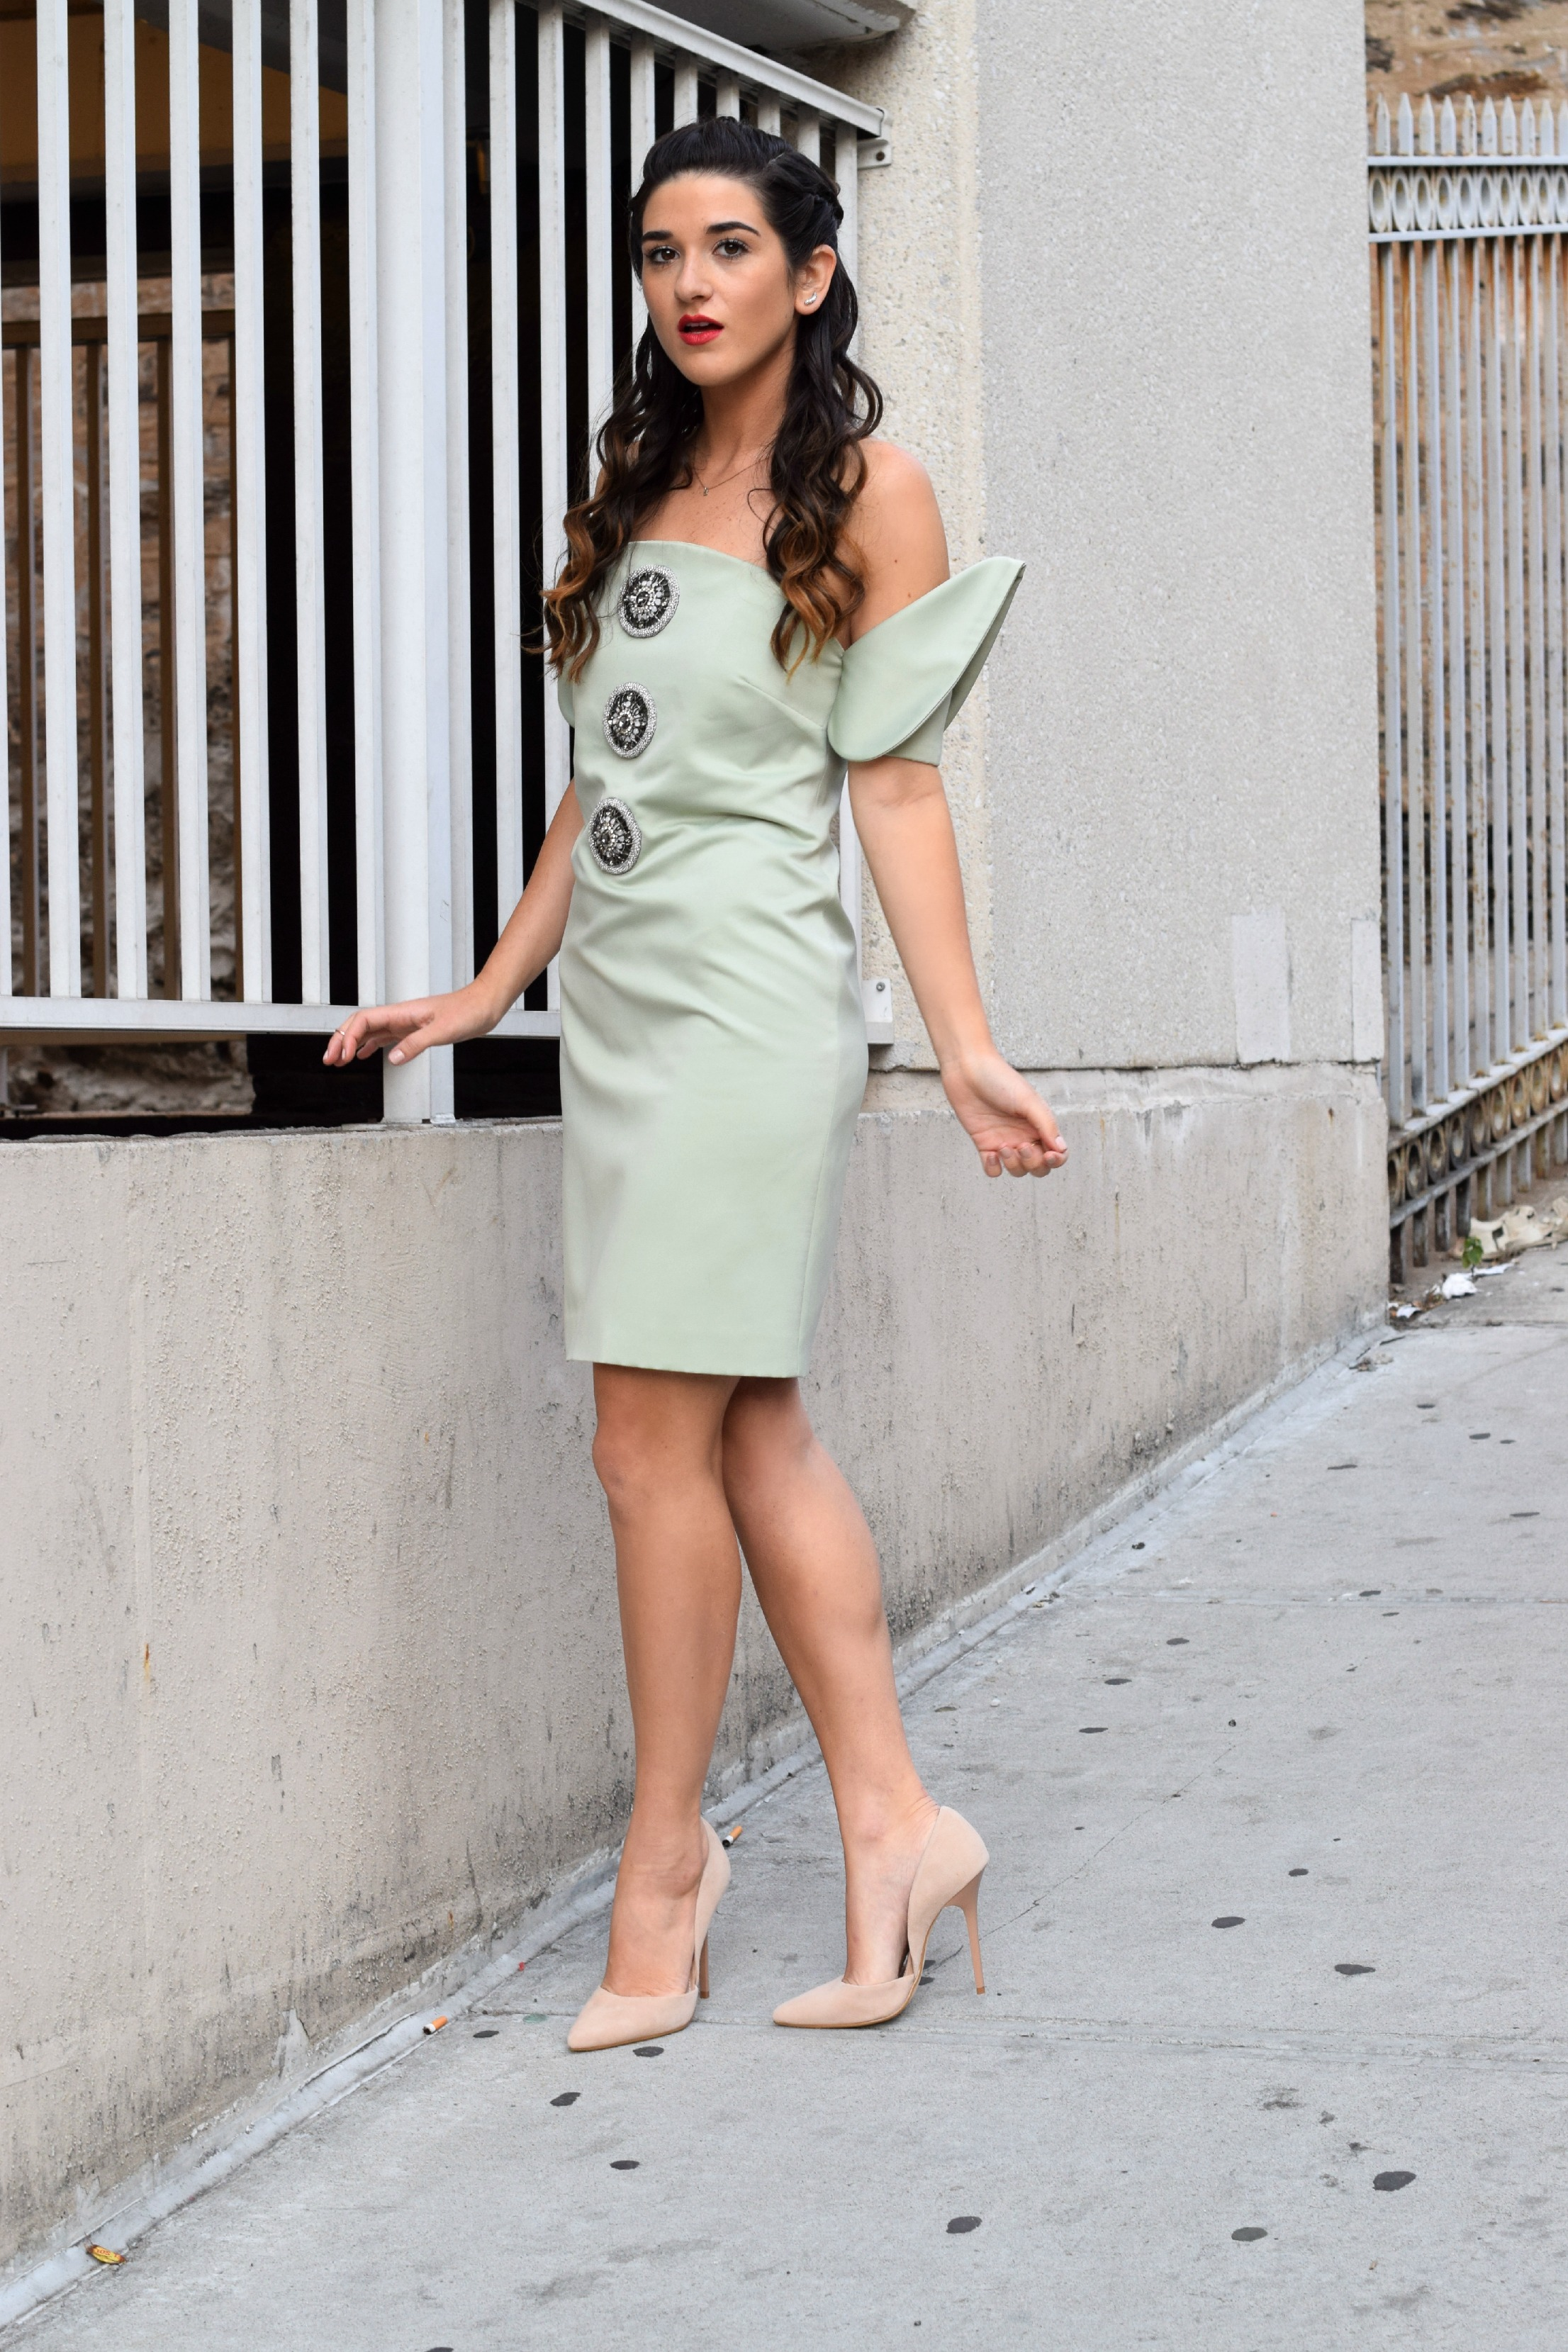 Sage Terno Cocktail Dress Mestiza NY Louboutins & Love Fashion Blog Esther Santer Street Style Blogger NYC Photoshoot Earrings Steve Madden Heels Pumps Hair Brunette Model Girl Women Trendy Outfit OOTD Inspo Look Inspiration Beauty Shop Pretty Braids.JPG